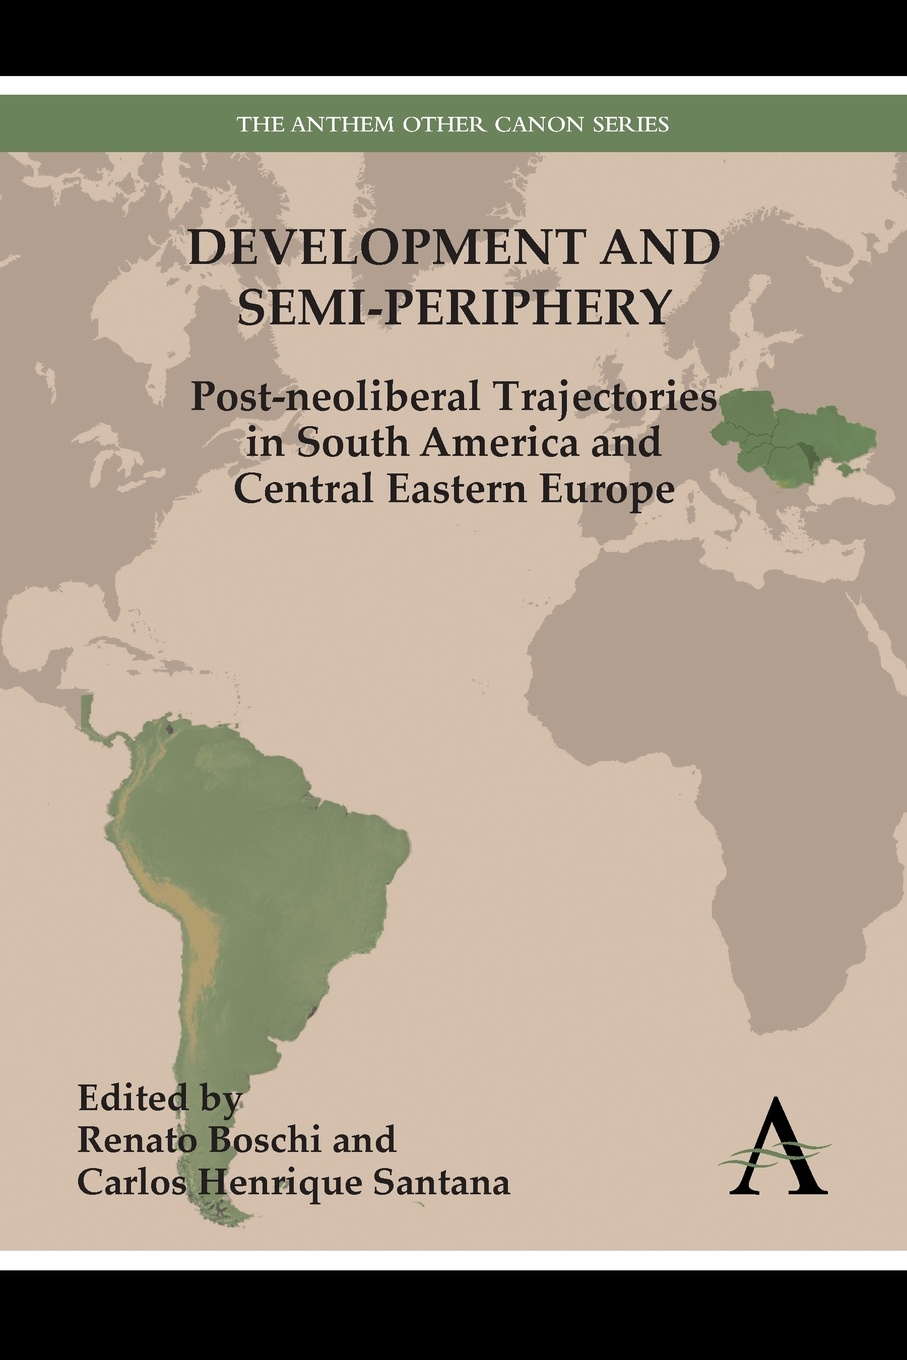 Development and Semi-Periphery. Post-Neoliberal Trajectories in South America and Central Eastern Europe lloyd s kramer nationalism in europe and america politics cultures and identities since 1775